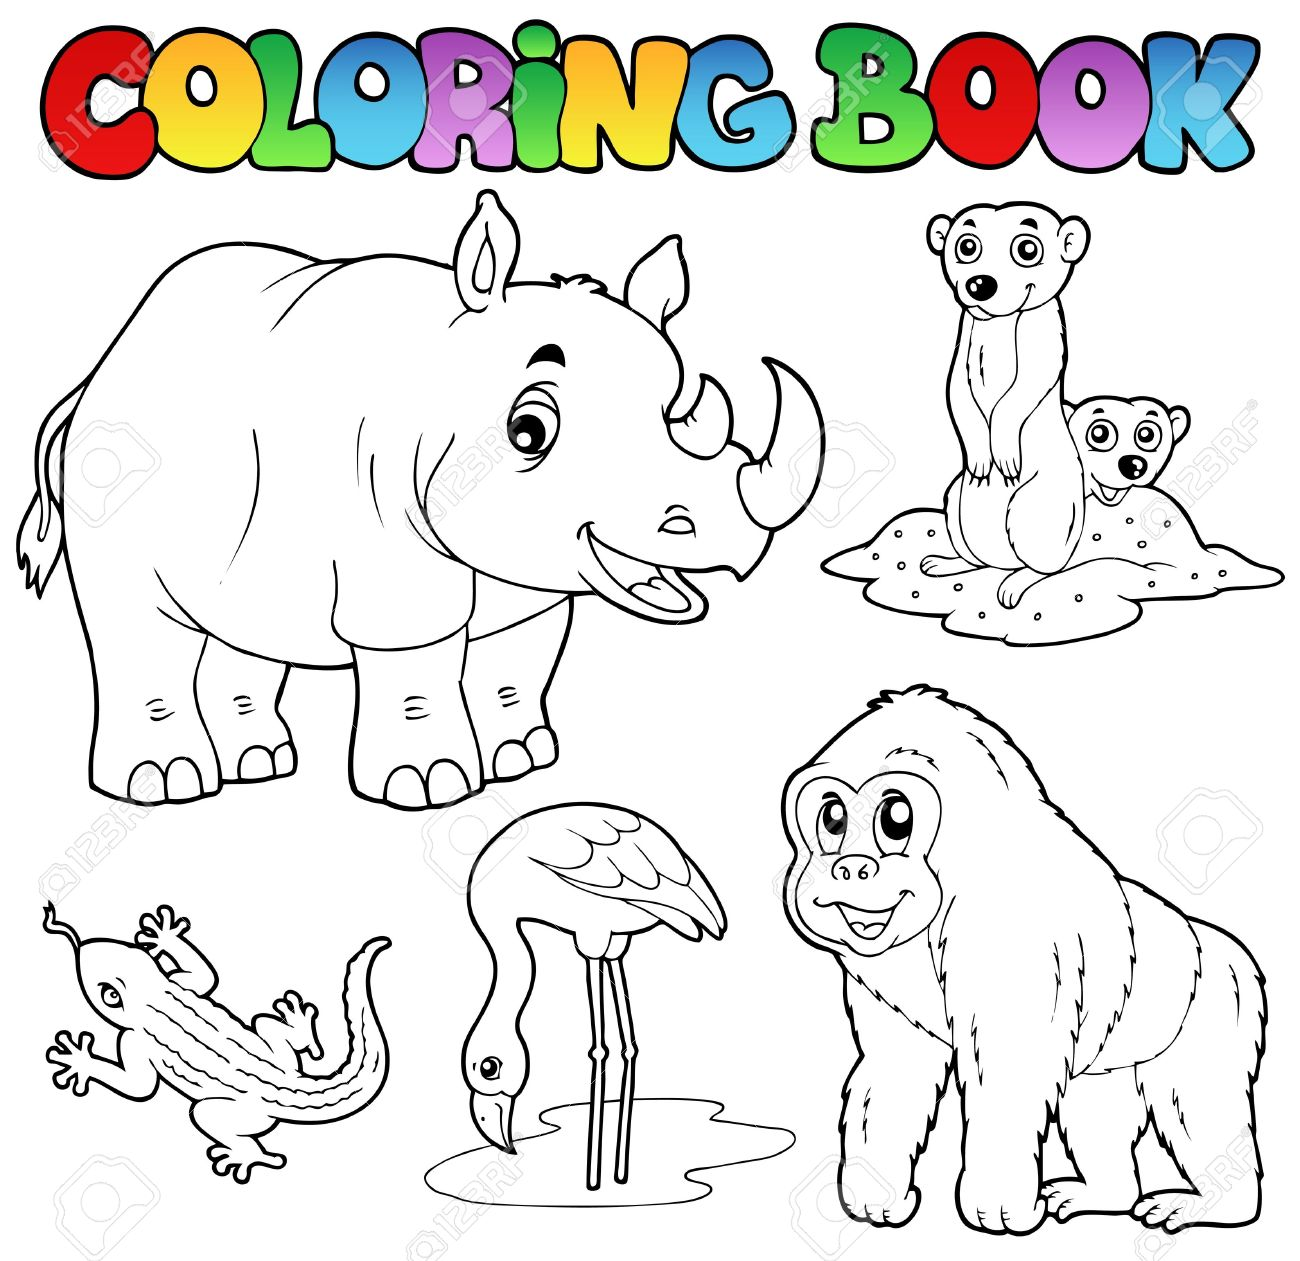 Coloring Book Zoo Animals Set 1 - Vector Illustration. Royalty Free ...